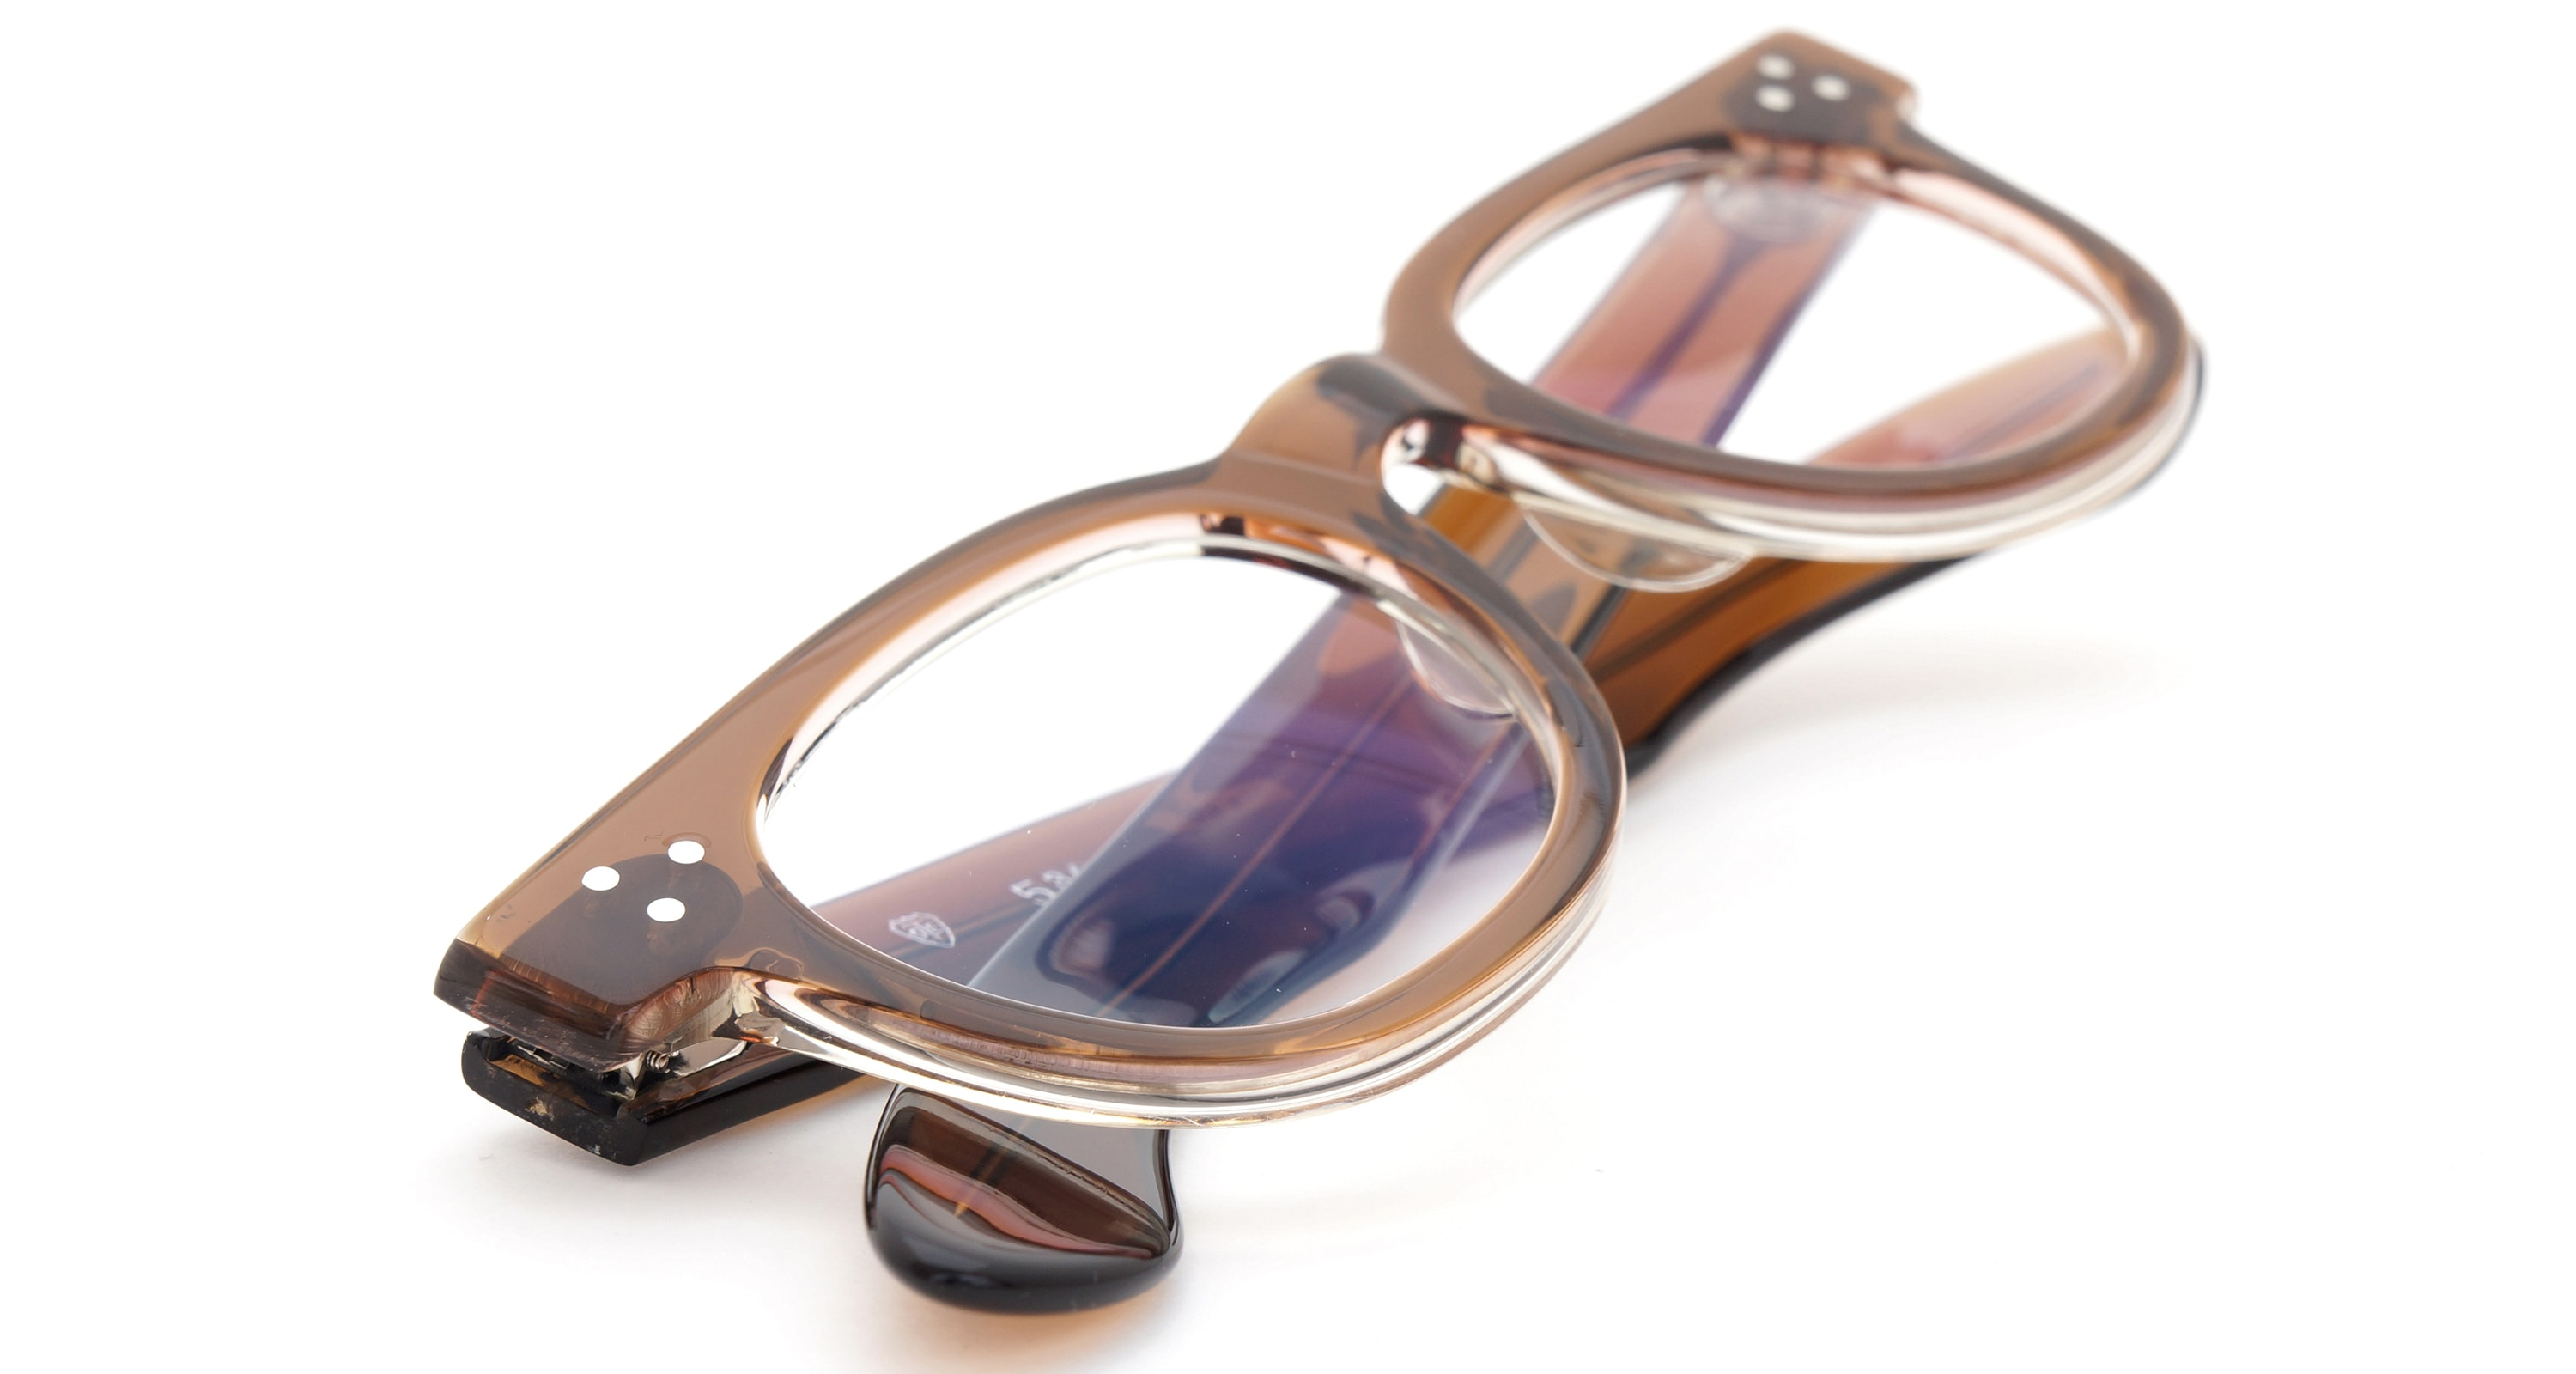 The Spectacle メガネ 1950s-70s TART OPTICAL FDR (FRAME USA) BROWN 44-22 イメージ14